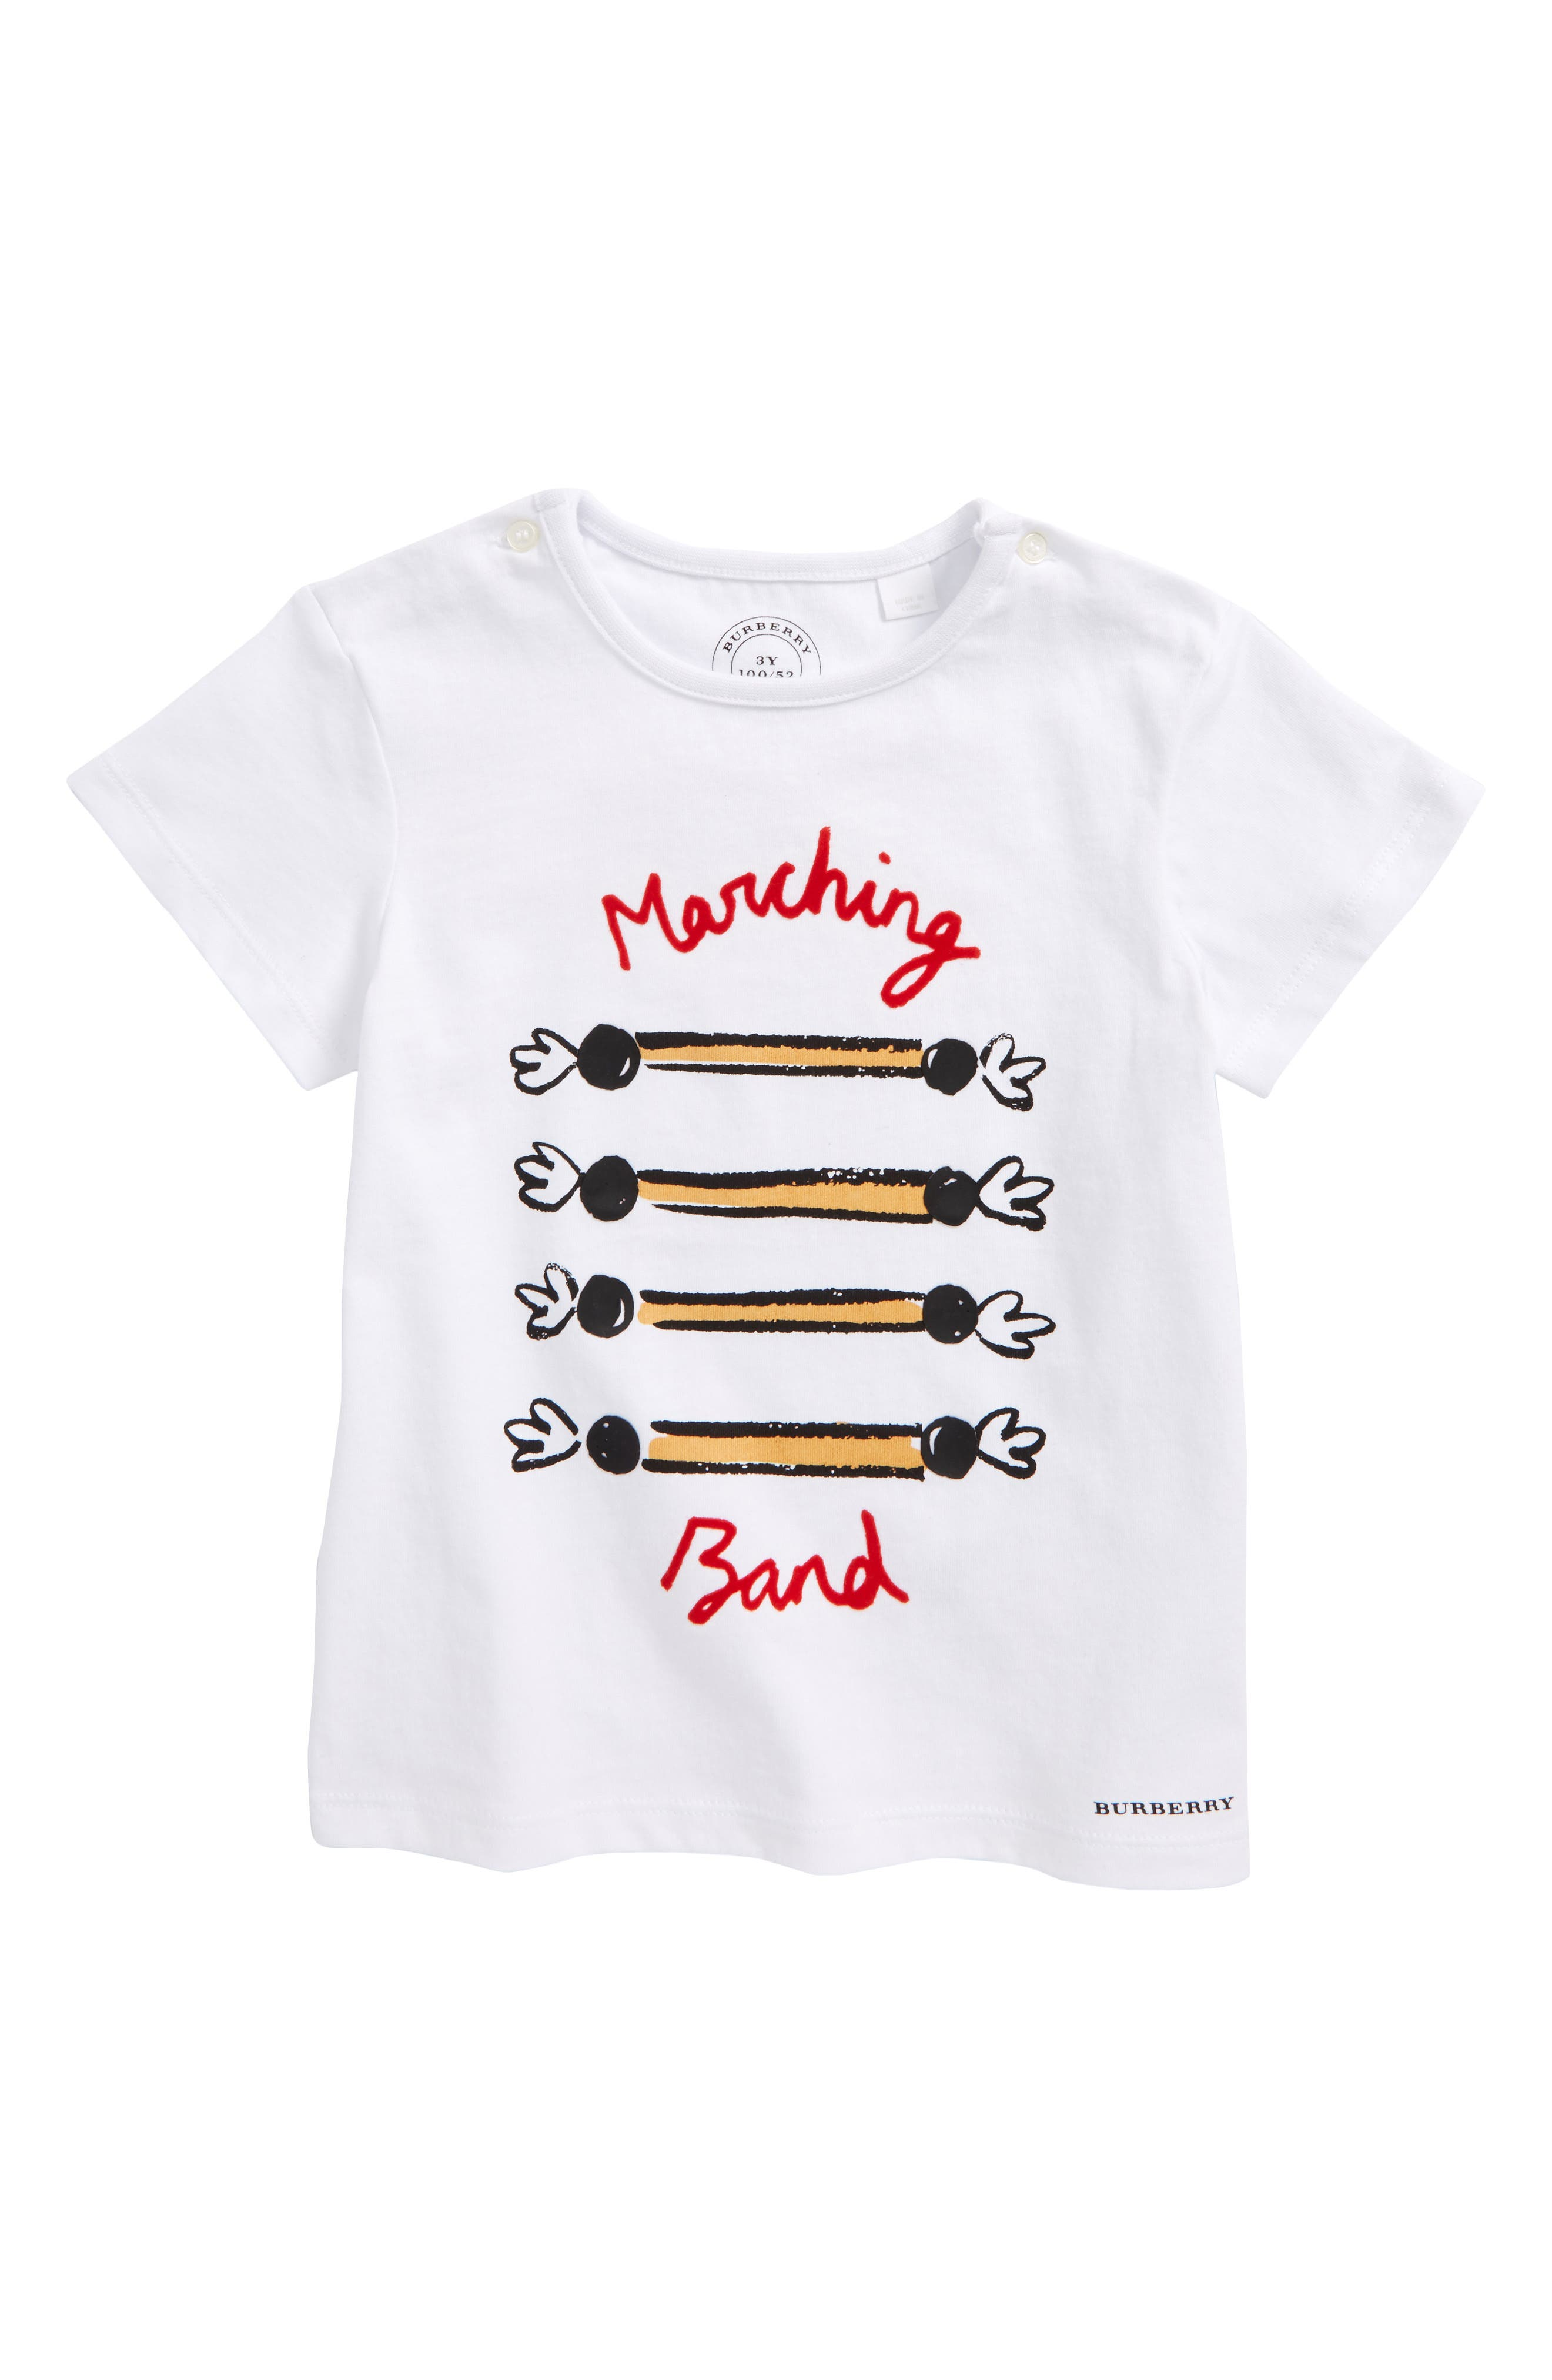 Alternate Image 1 Selected - Burberry Marching Band Tee (Baby)